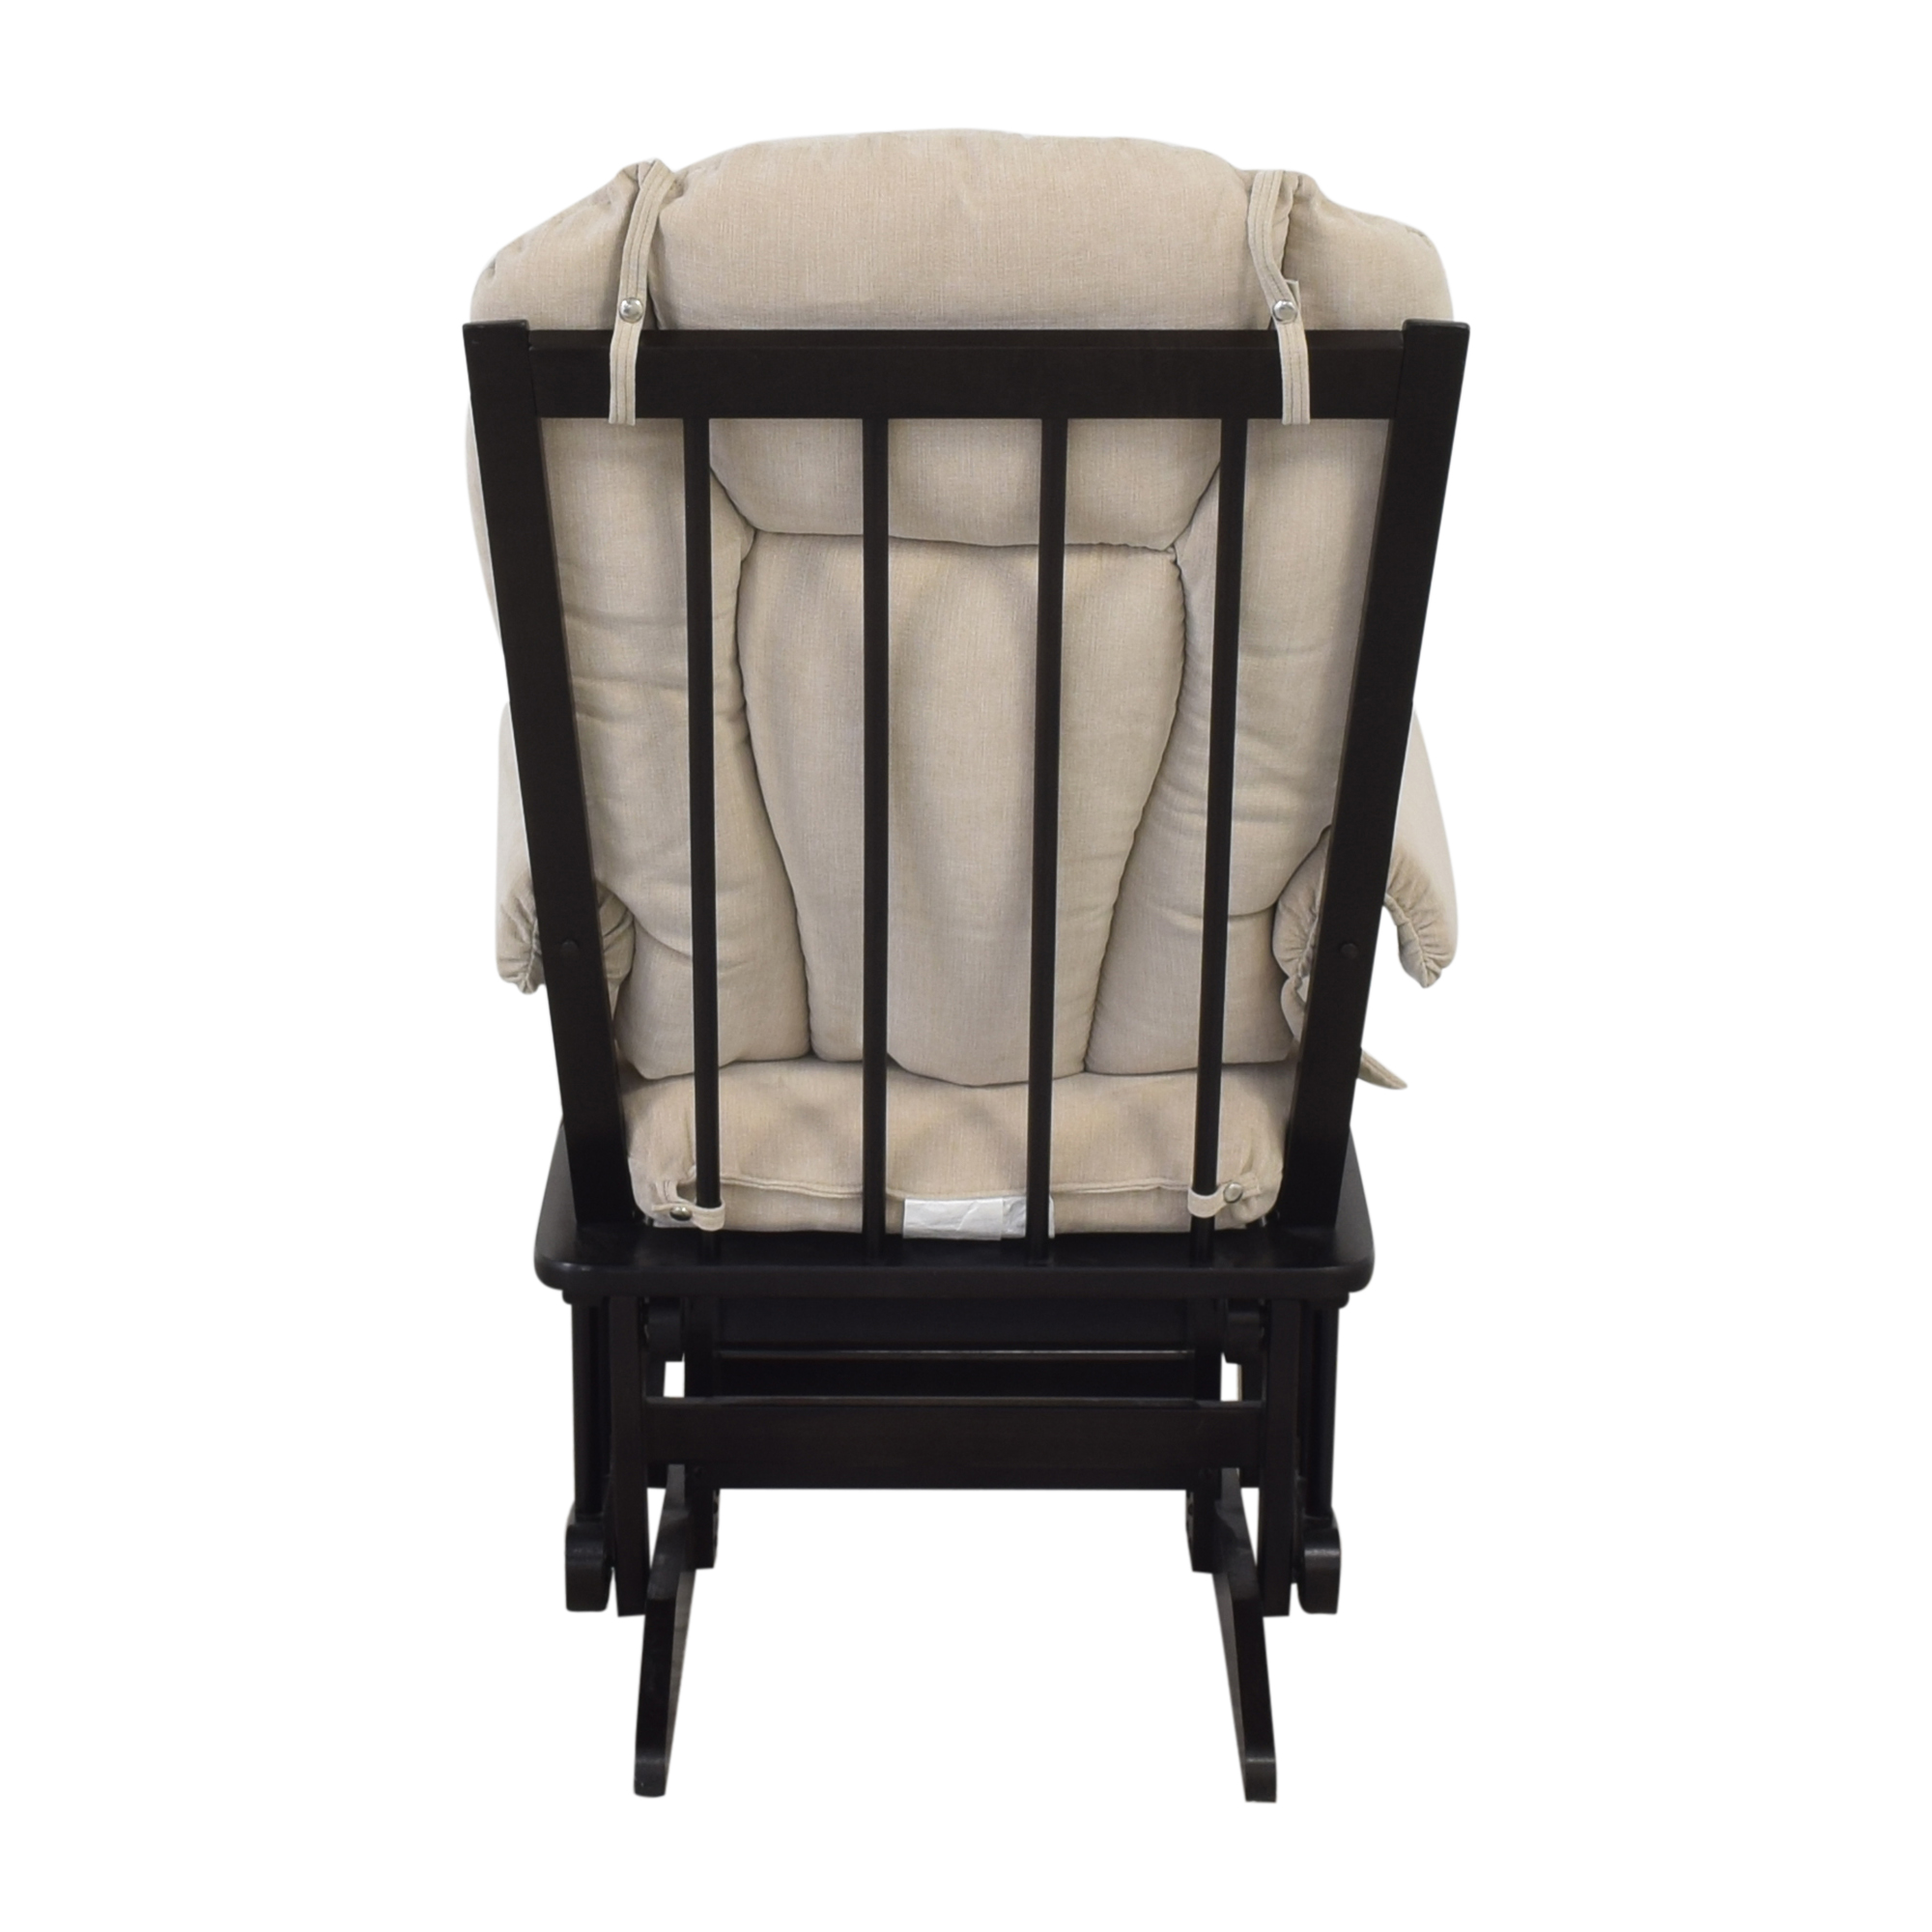 Dutailier Dutalier Rocking Chair and Ottoman ma